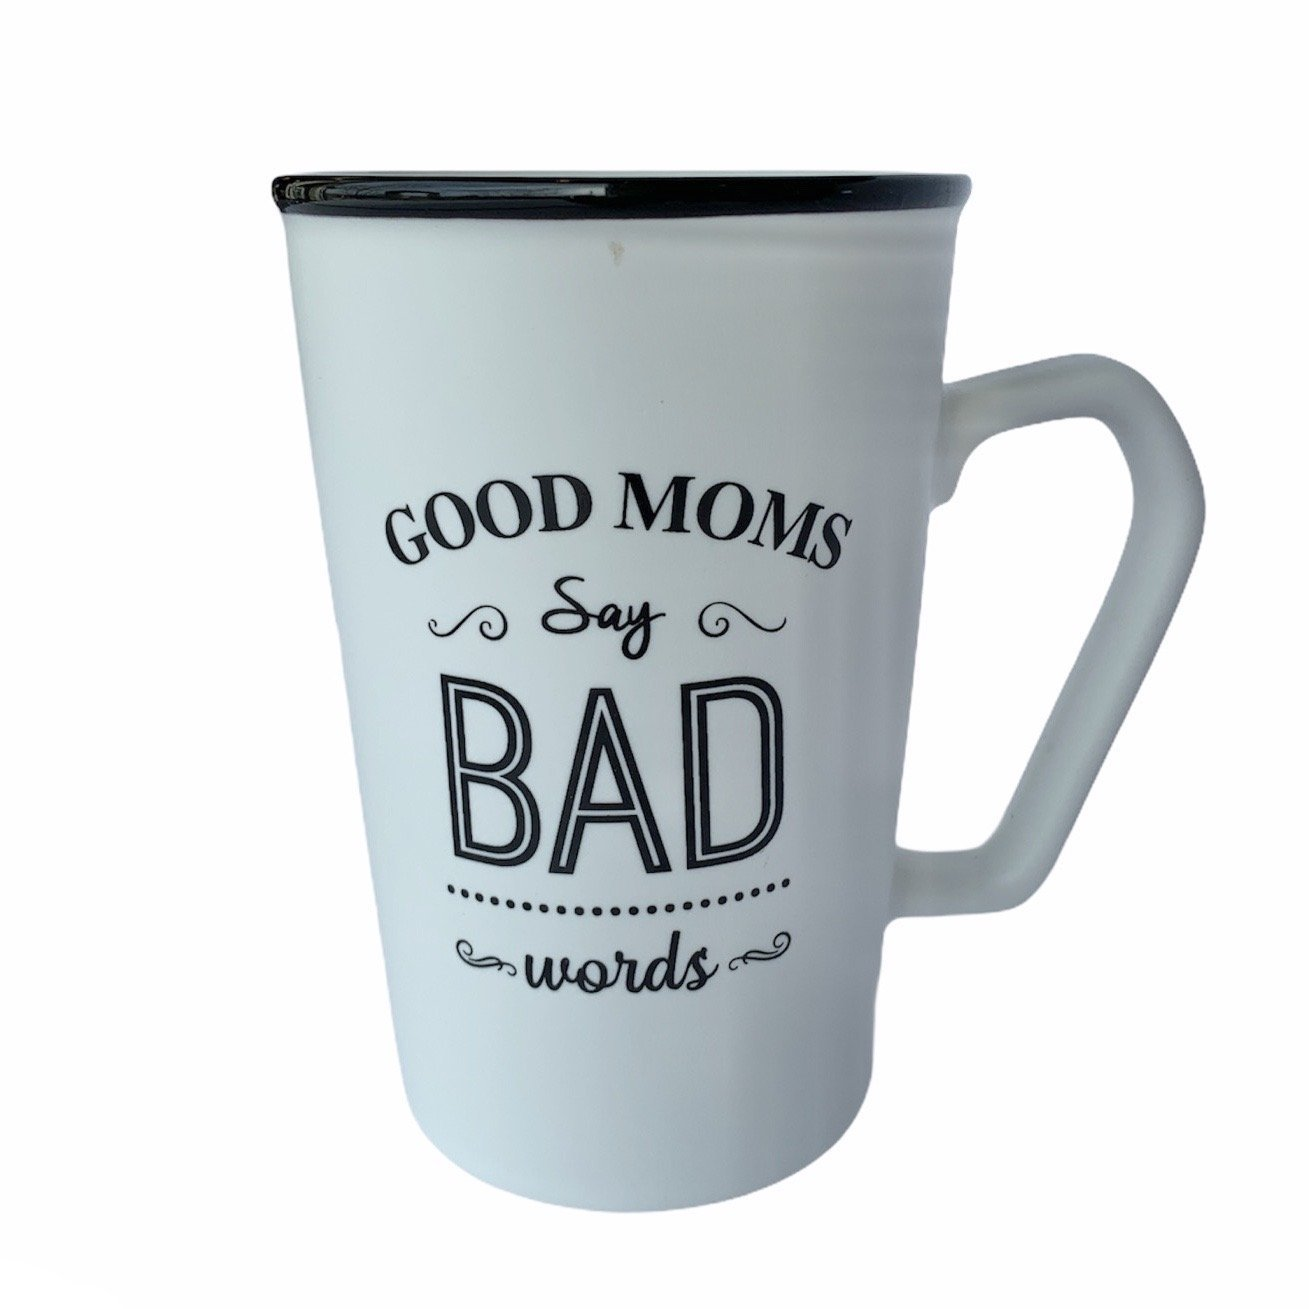 'Good Moms' Ceramic Mugs in White or Black - Lady of the Lake